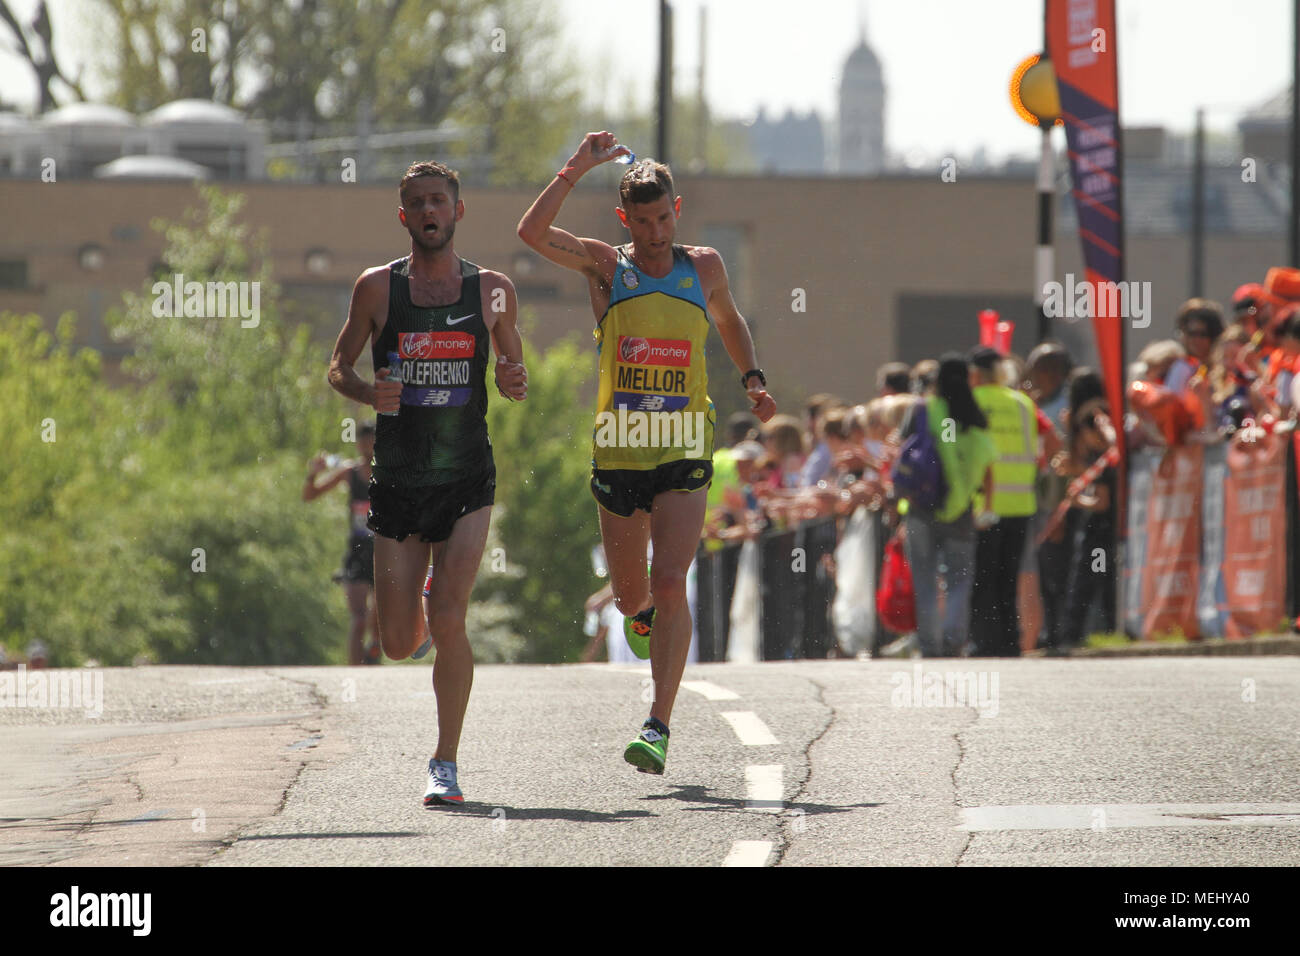 London, United Kingdom - April 22: Runners race towards the 17 mile mark at Madchutte during the Virgin Money London Marathon on April 22, 2018. Over 40,000 are expected to start the 26.2 miles run from Greenwich to Westminster.© David Mbiyu/Alamy Live News - Stock Image